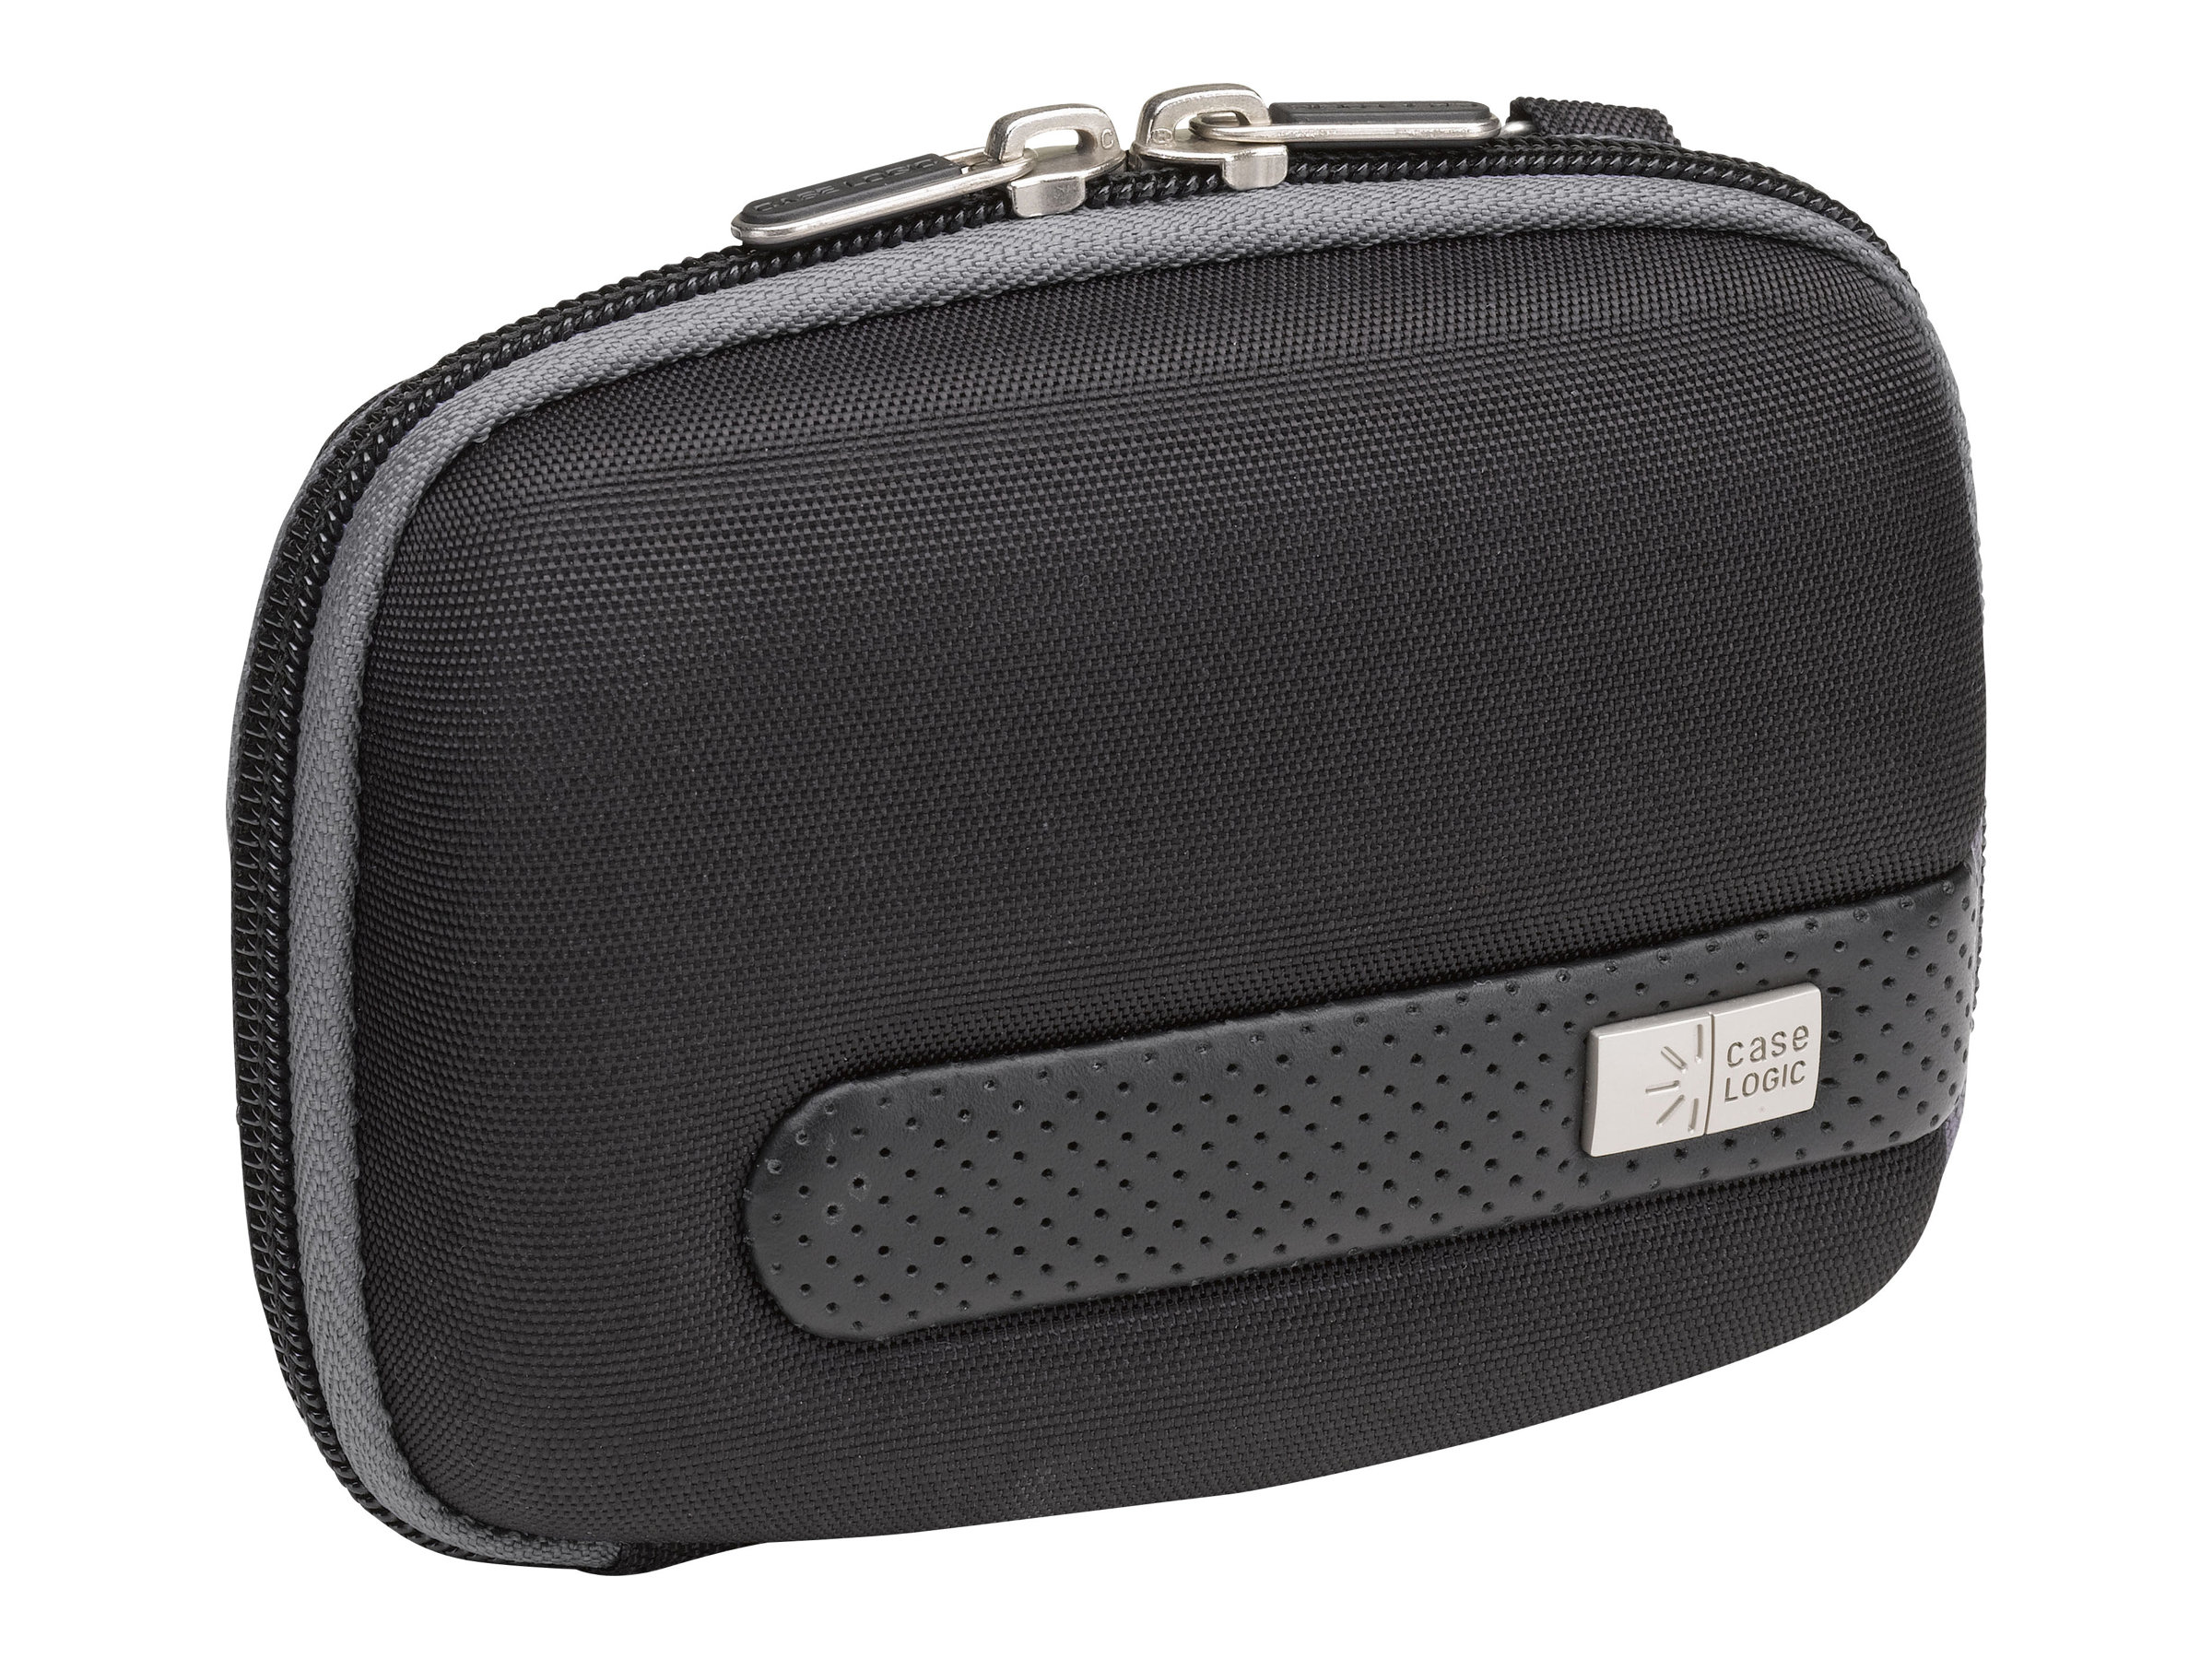 Case Logic 4.3 Flat Sccreen GPS Case, Black, GPSP2BLACK, 8637065, Carrying Cases - Other